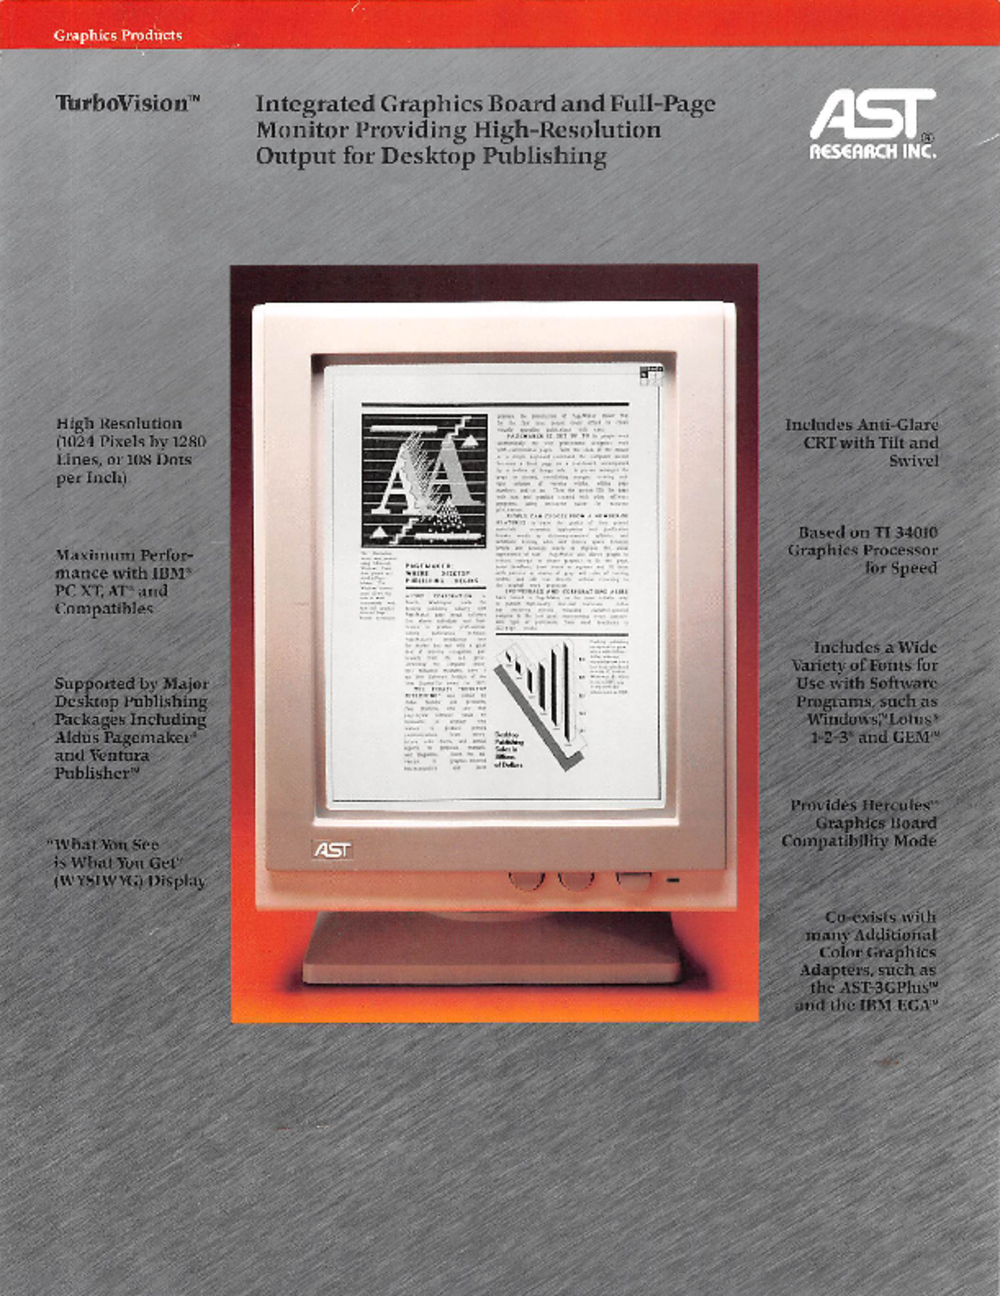 Article: AST Research Turbovision Promotional Sheet